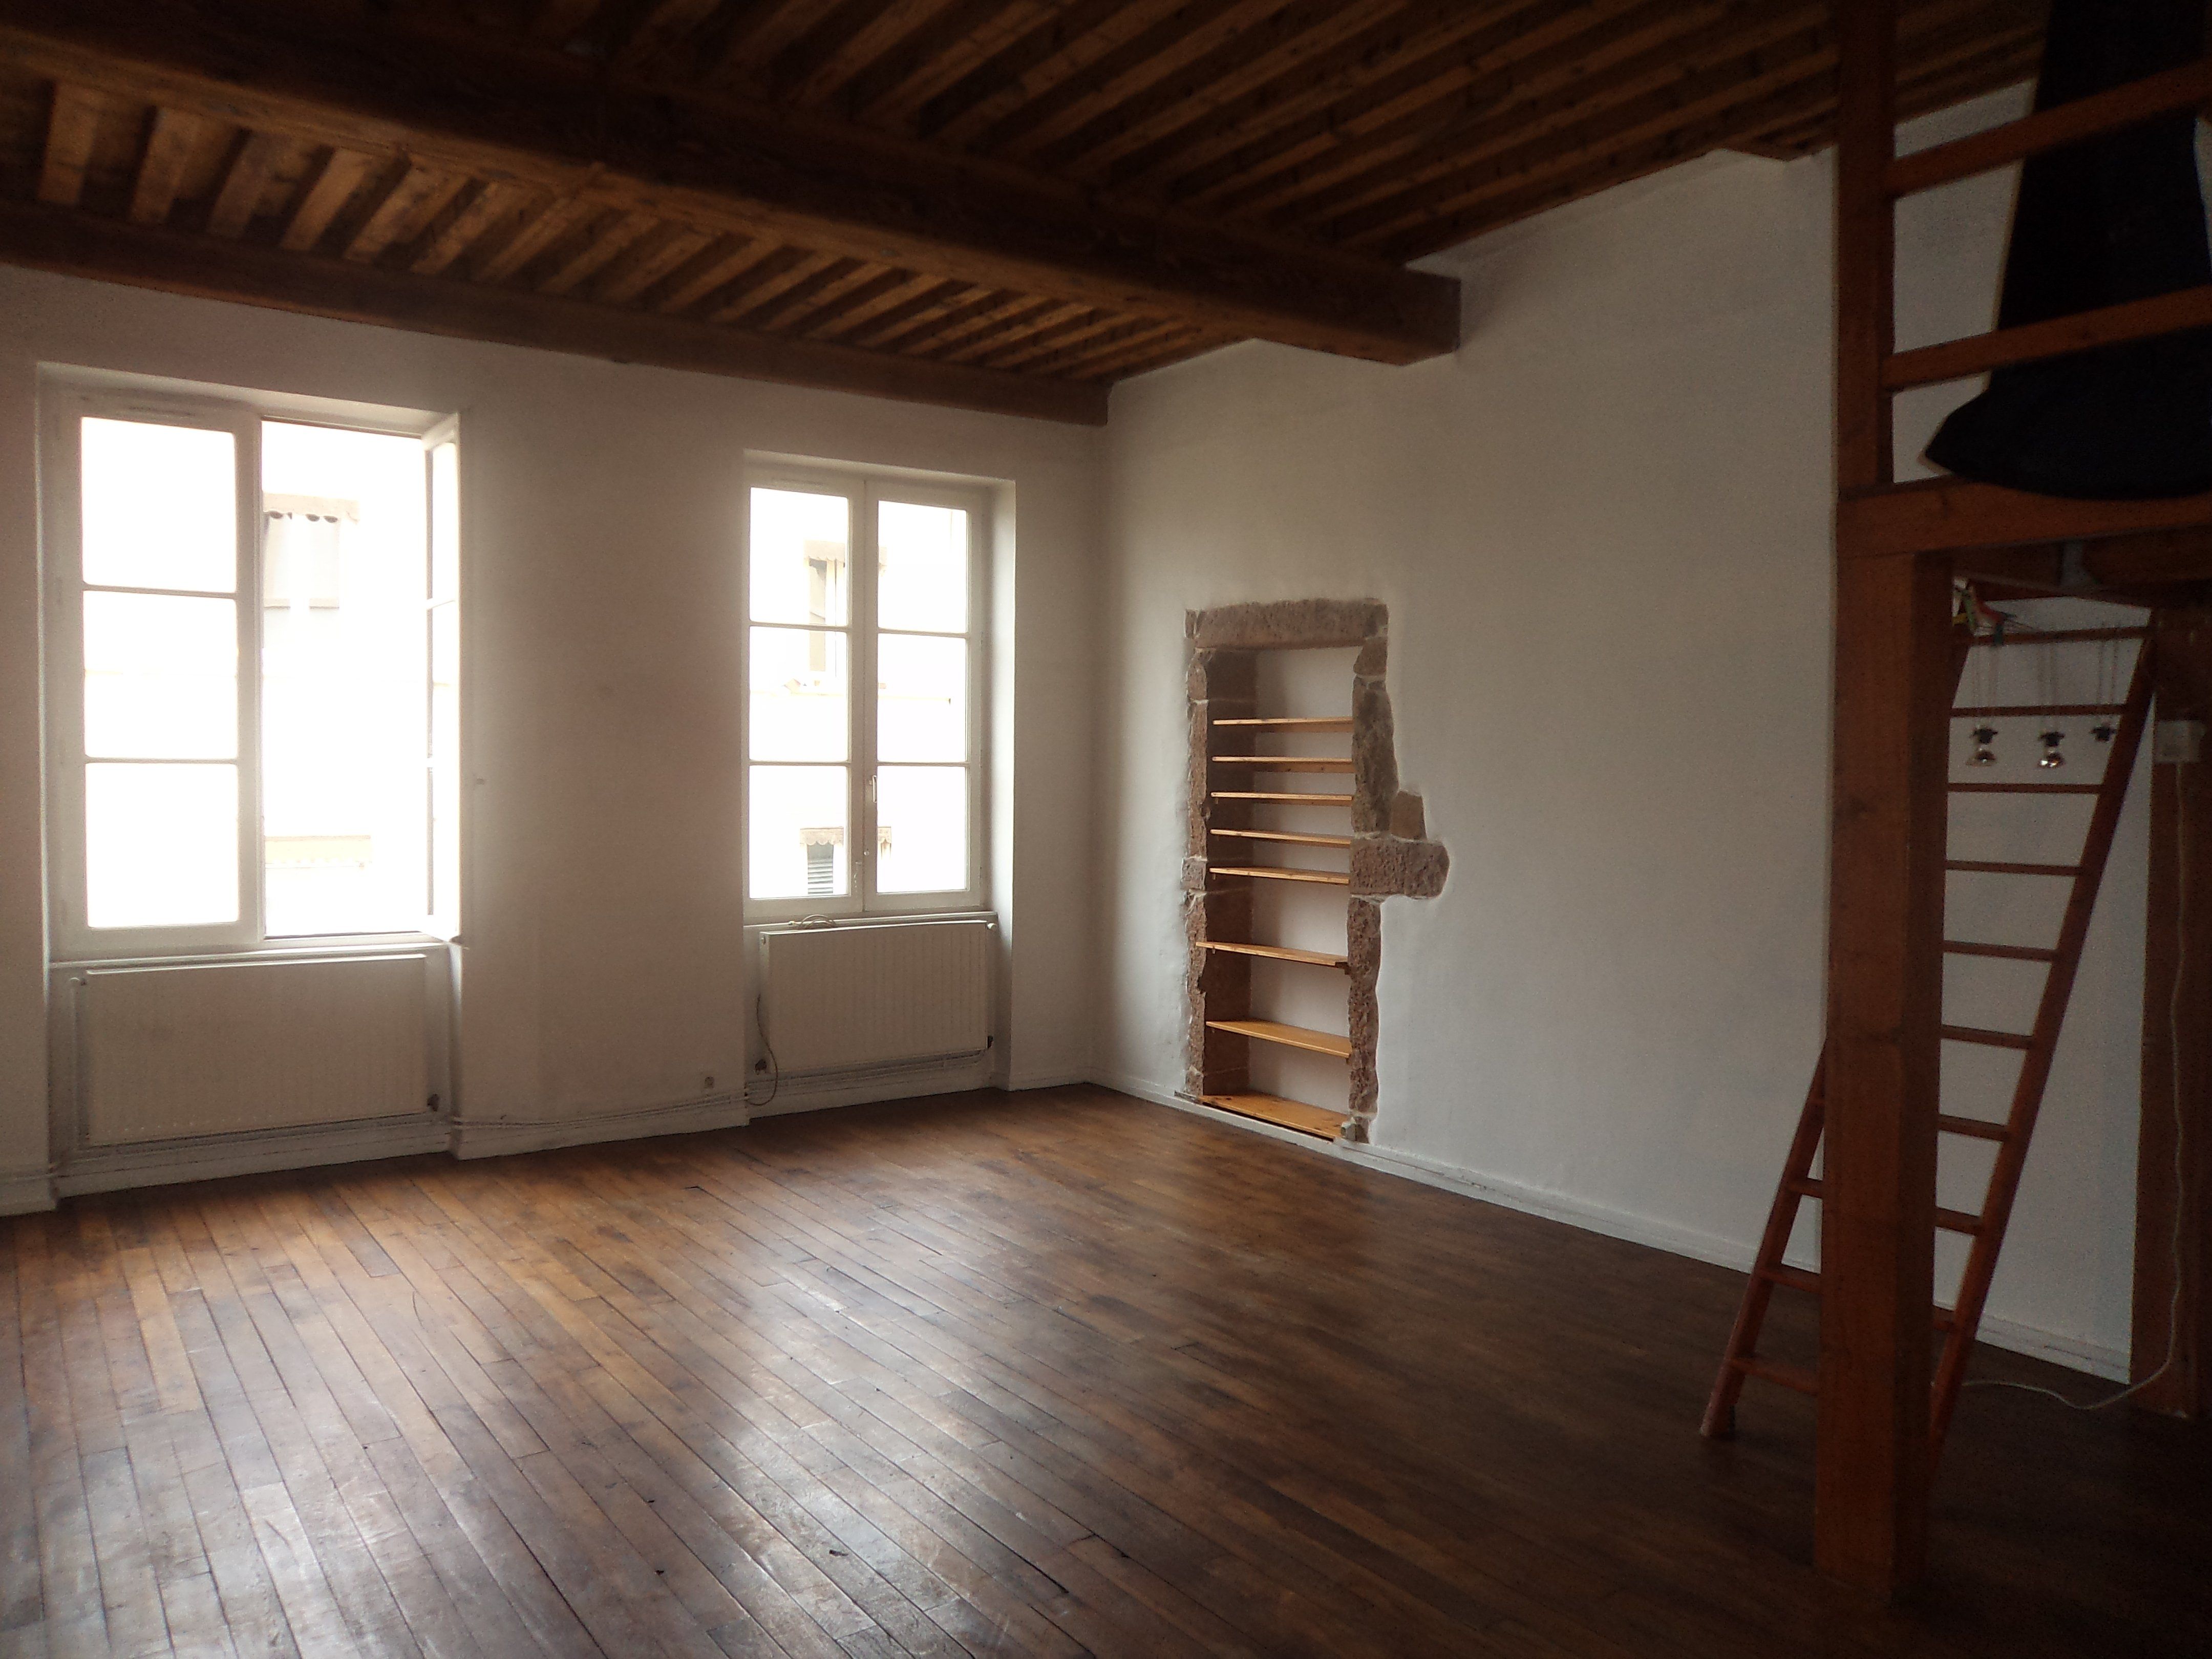 Location Lyon 01, appartement, 77m²